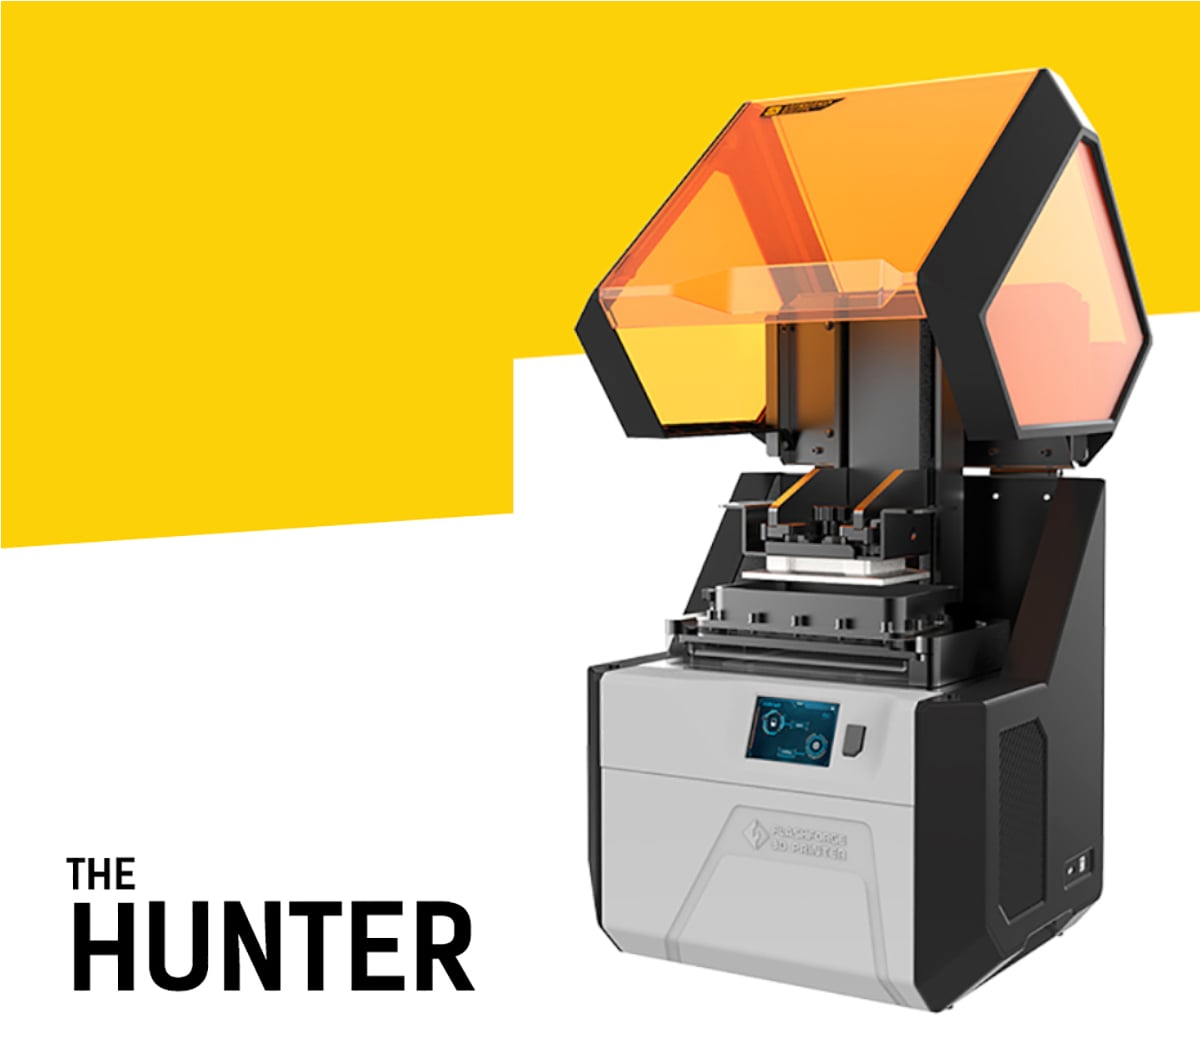 Hunter Flashforge Stampante a Resina Professionale Industriale